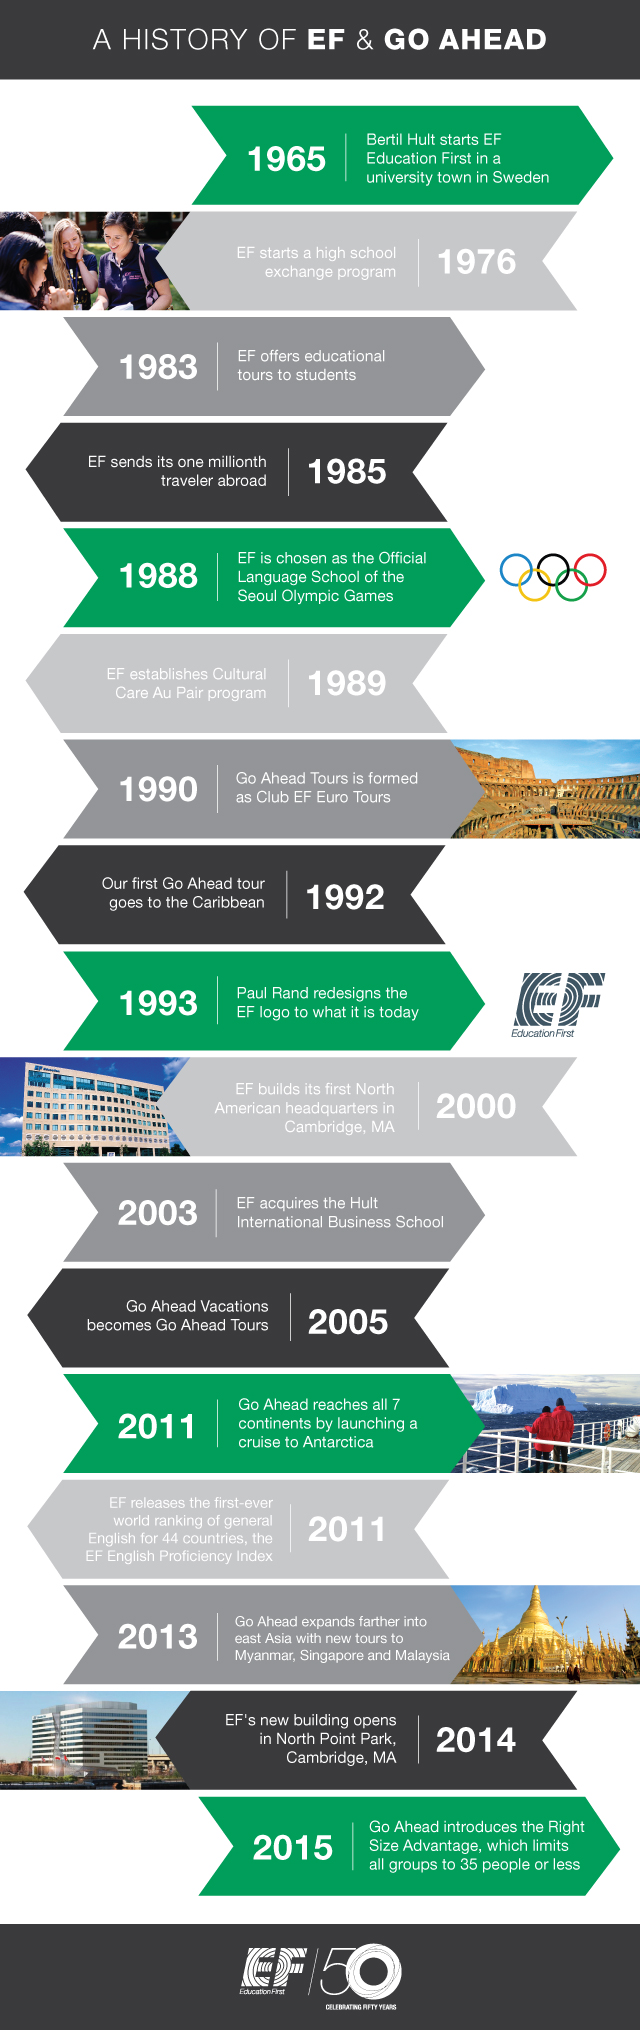 A history of EF and Go Ahead